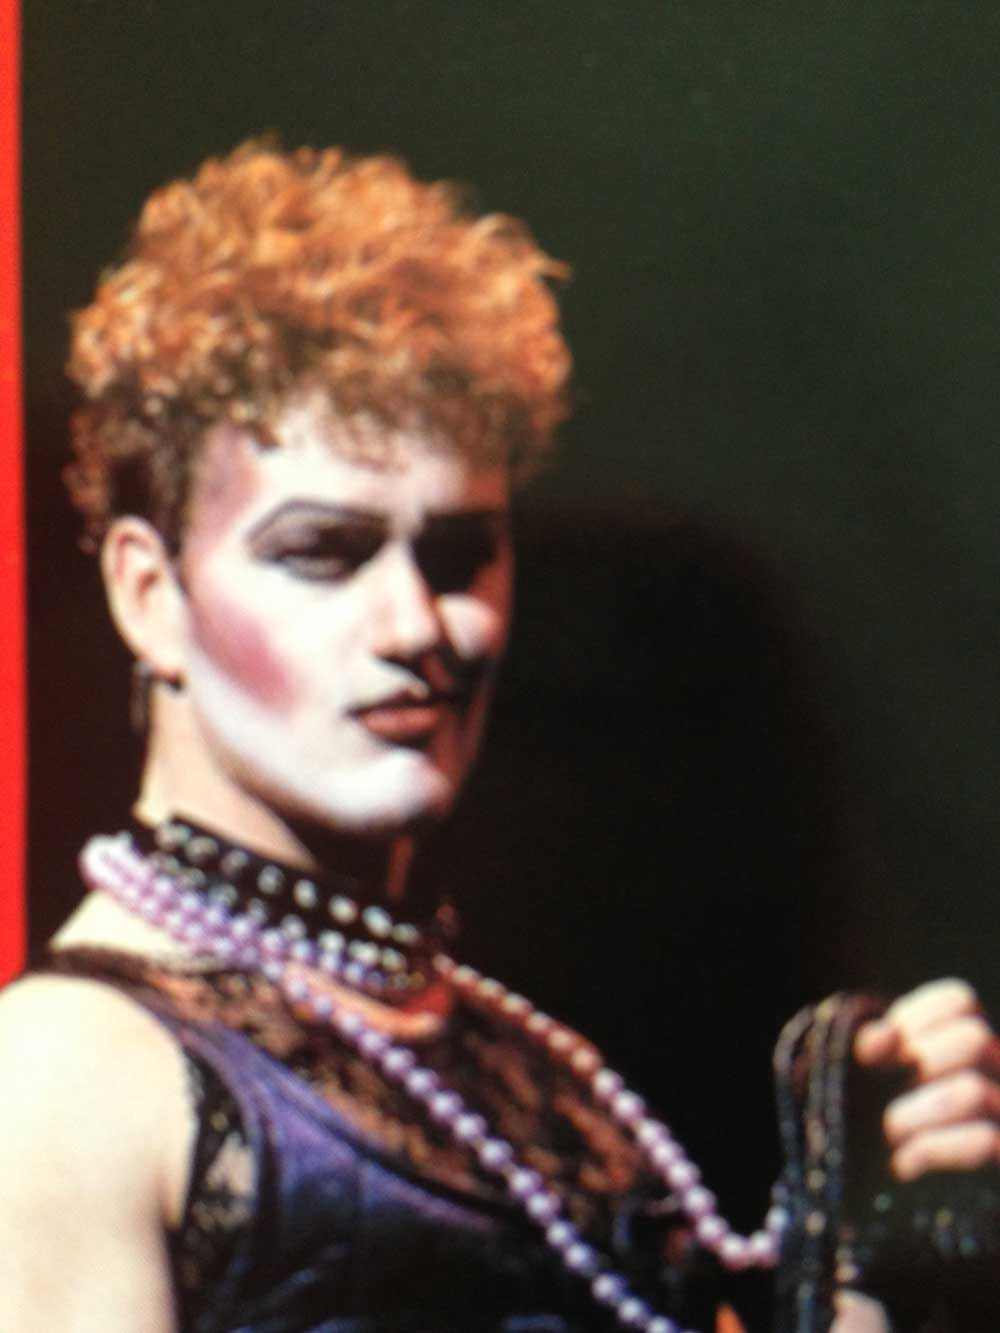 craig mclachlan wikicraig mclachlan & check 1-2, craig mclachlan height, craig mclachlan facebook, craig mclachlan, craig mclachlan 'mona', craig mclachlan rocky horror, craig mclachlan dr blake, craig mclachlan wife, craig mclachlan gay, craig mclachlan hey mona, craig mclachlan wiki, craig mclachlan imdb, craig mclachlan youtube, craig mclachlan 2015, craig mclachlan bugs, craig mclachlan hey mona lyrics, craig mclachlan married, craig mclachlan songs, craig mclachlan biography, craig mclachlan partner